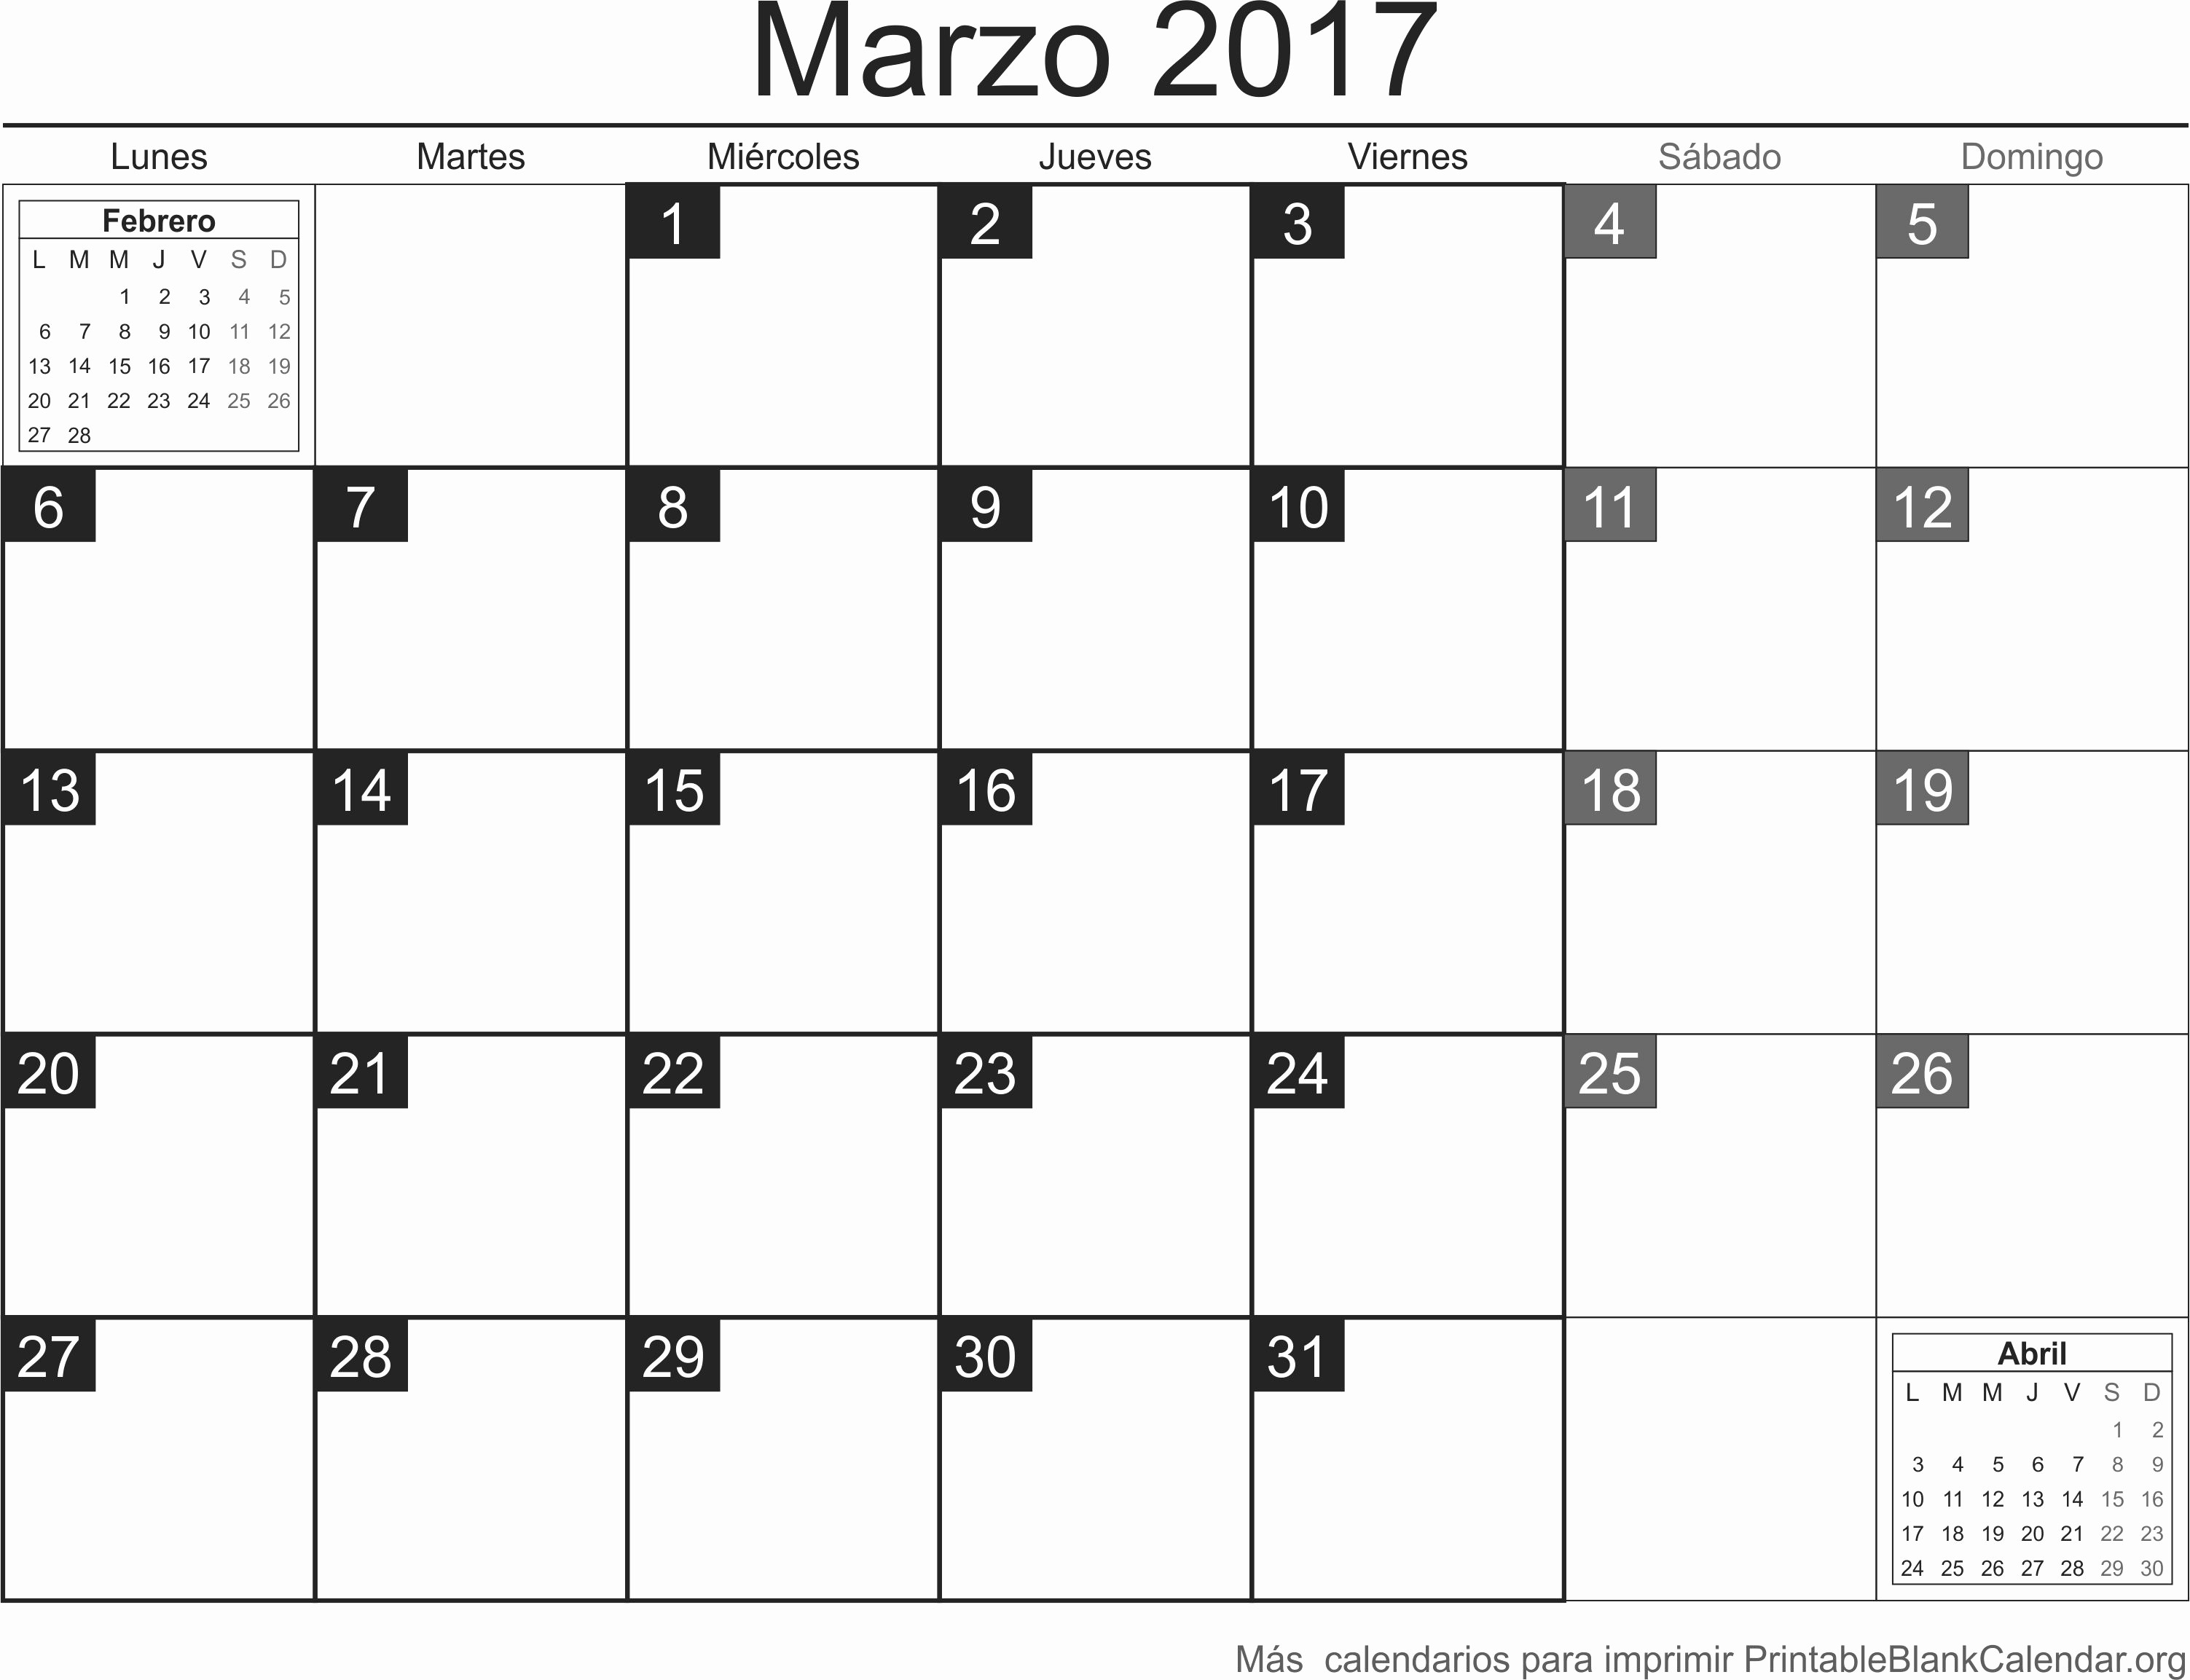 Calendario Anual 2017 Para Imprimir Best Of Marzo 2017 Calendario Para Imprimir Calendarios Para